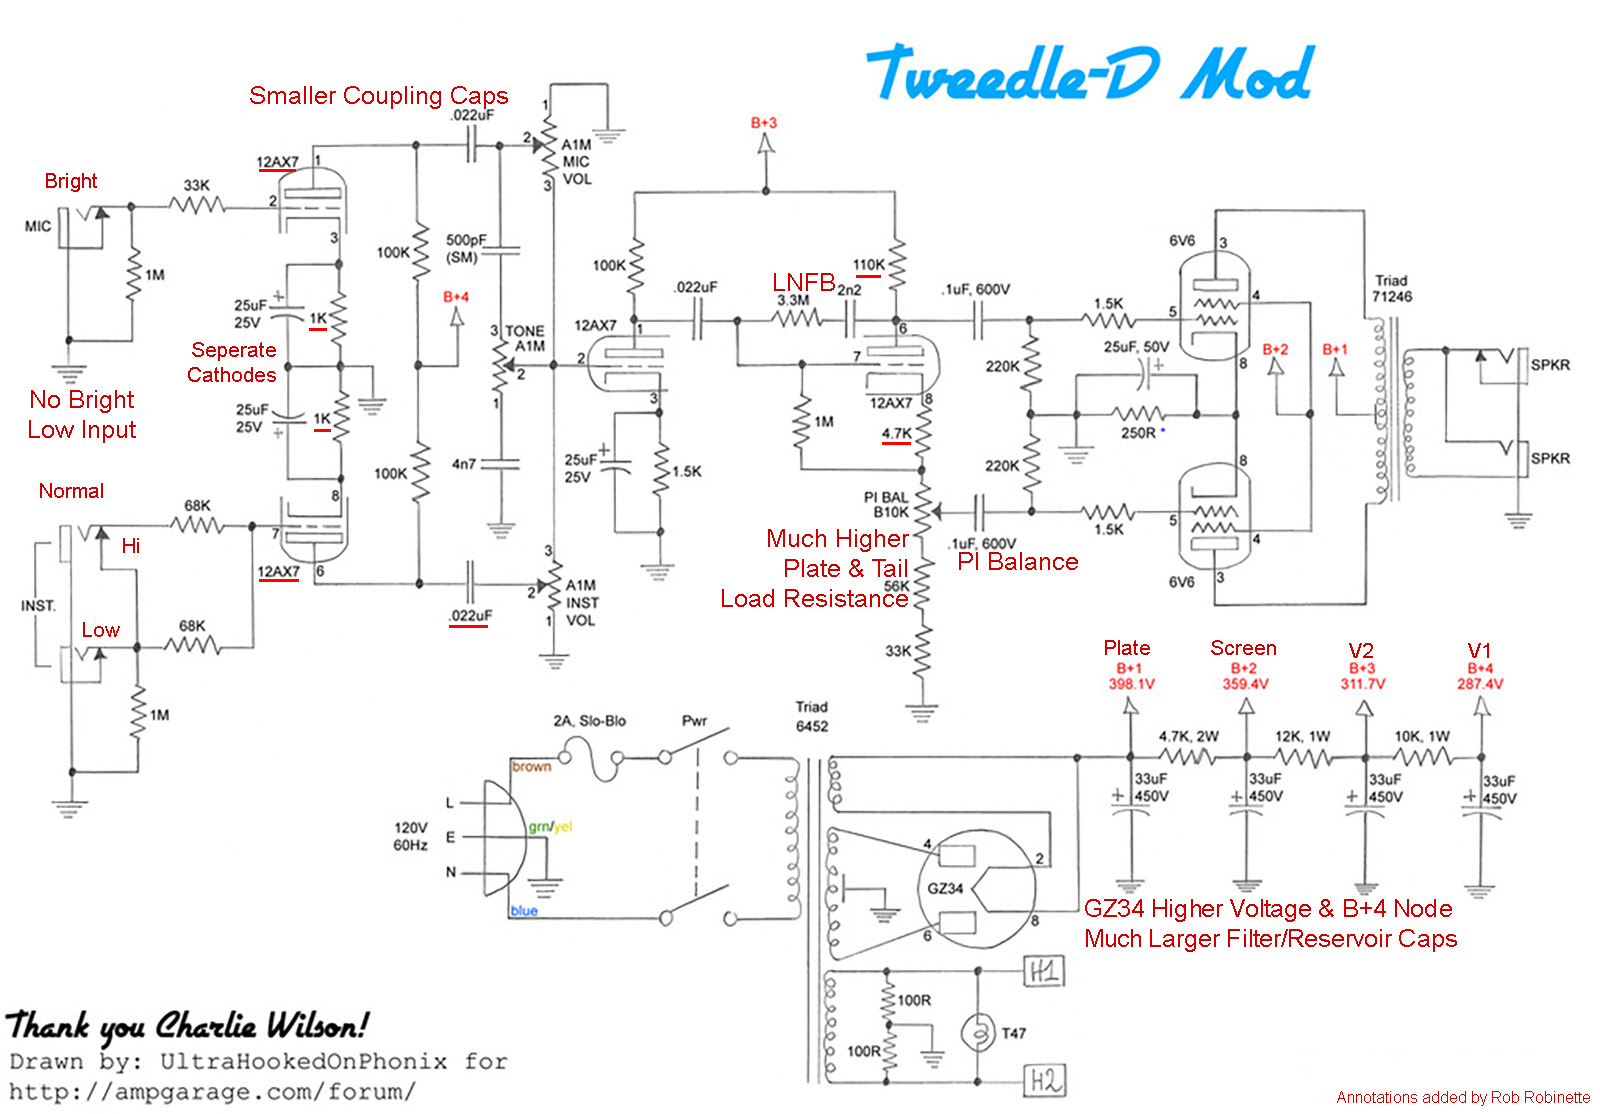 Amp Mods Wiring Diagram Preamp Eq I Have Highlighted The Differences Between Tweedle Dee And A Standard 5e3 Deluxe Phase Inverter Is Most Important Of